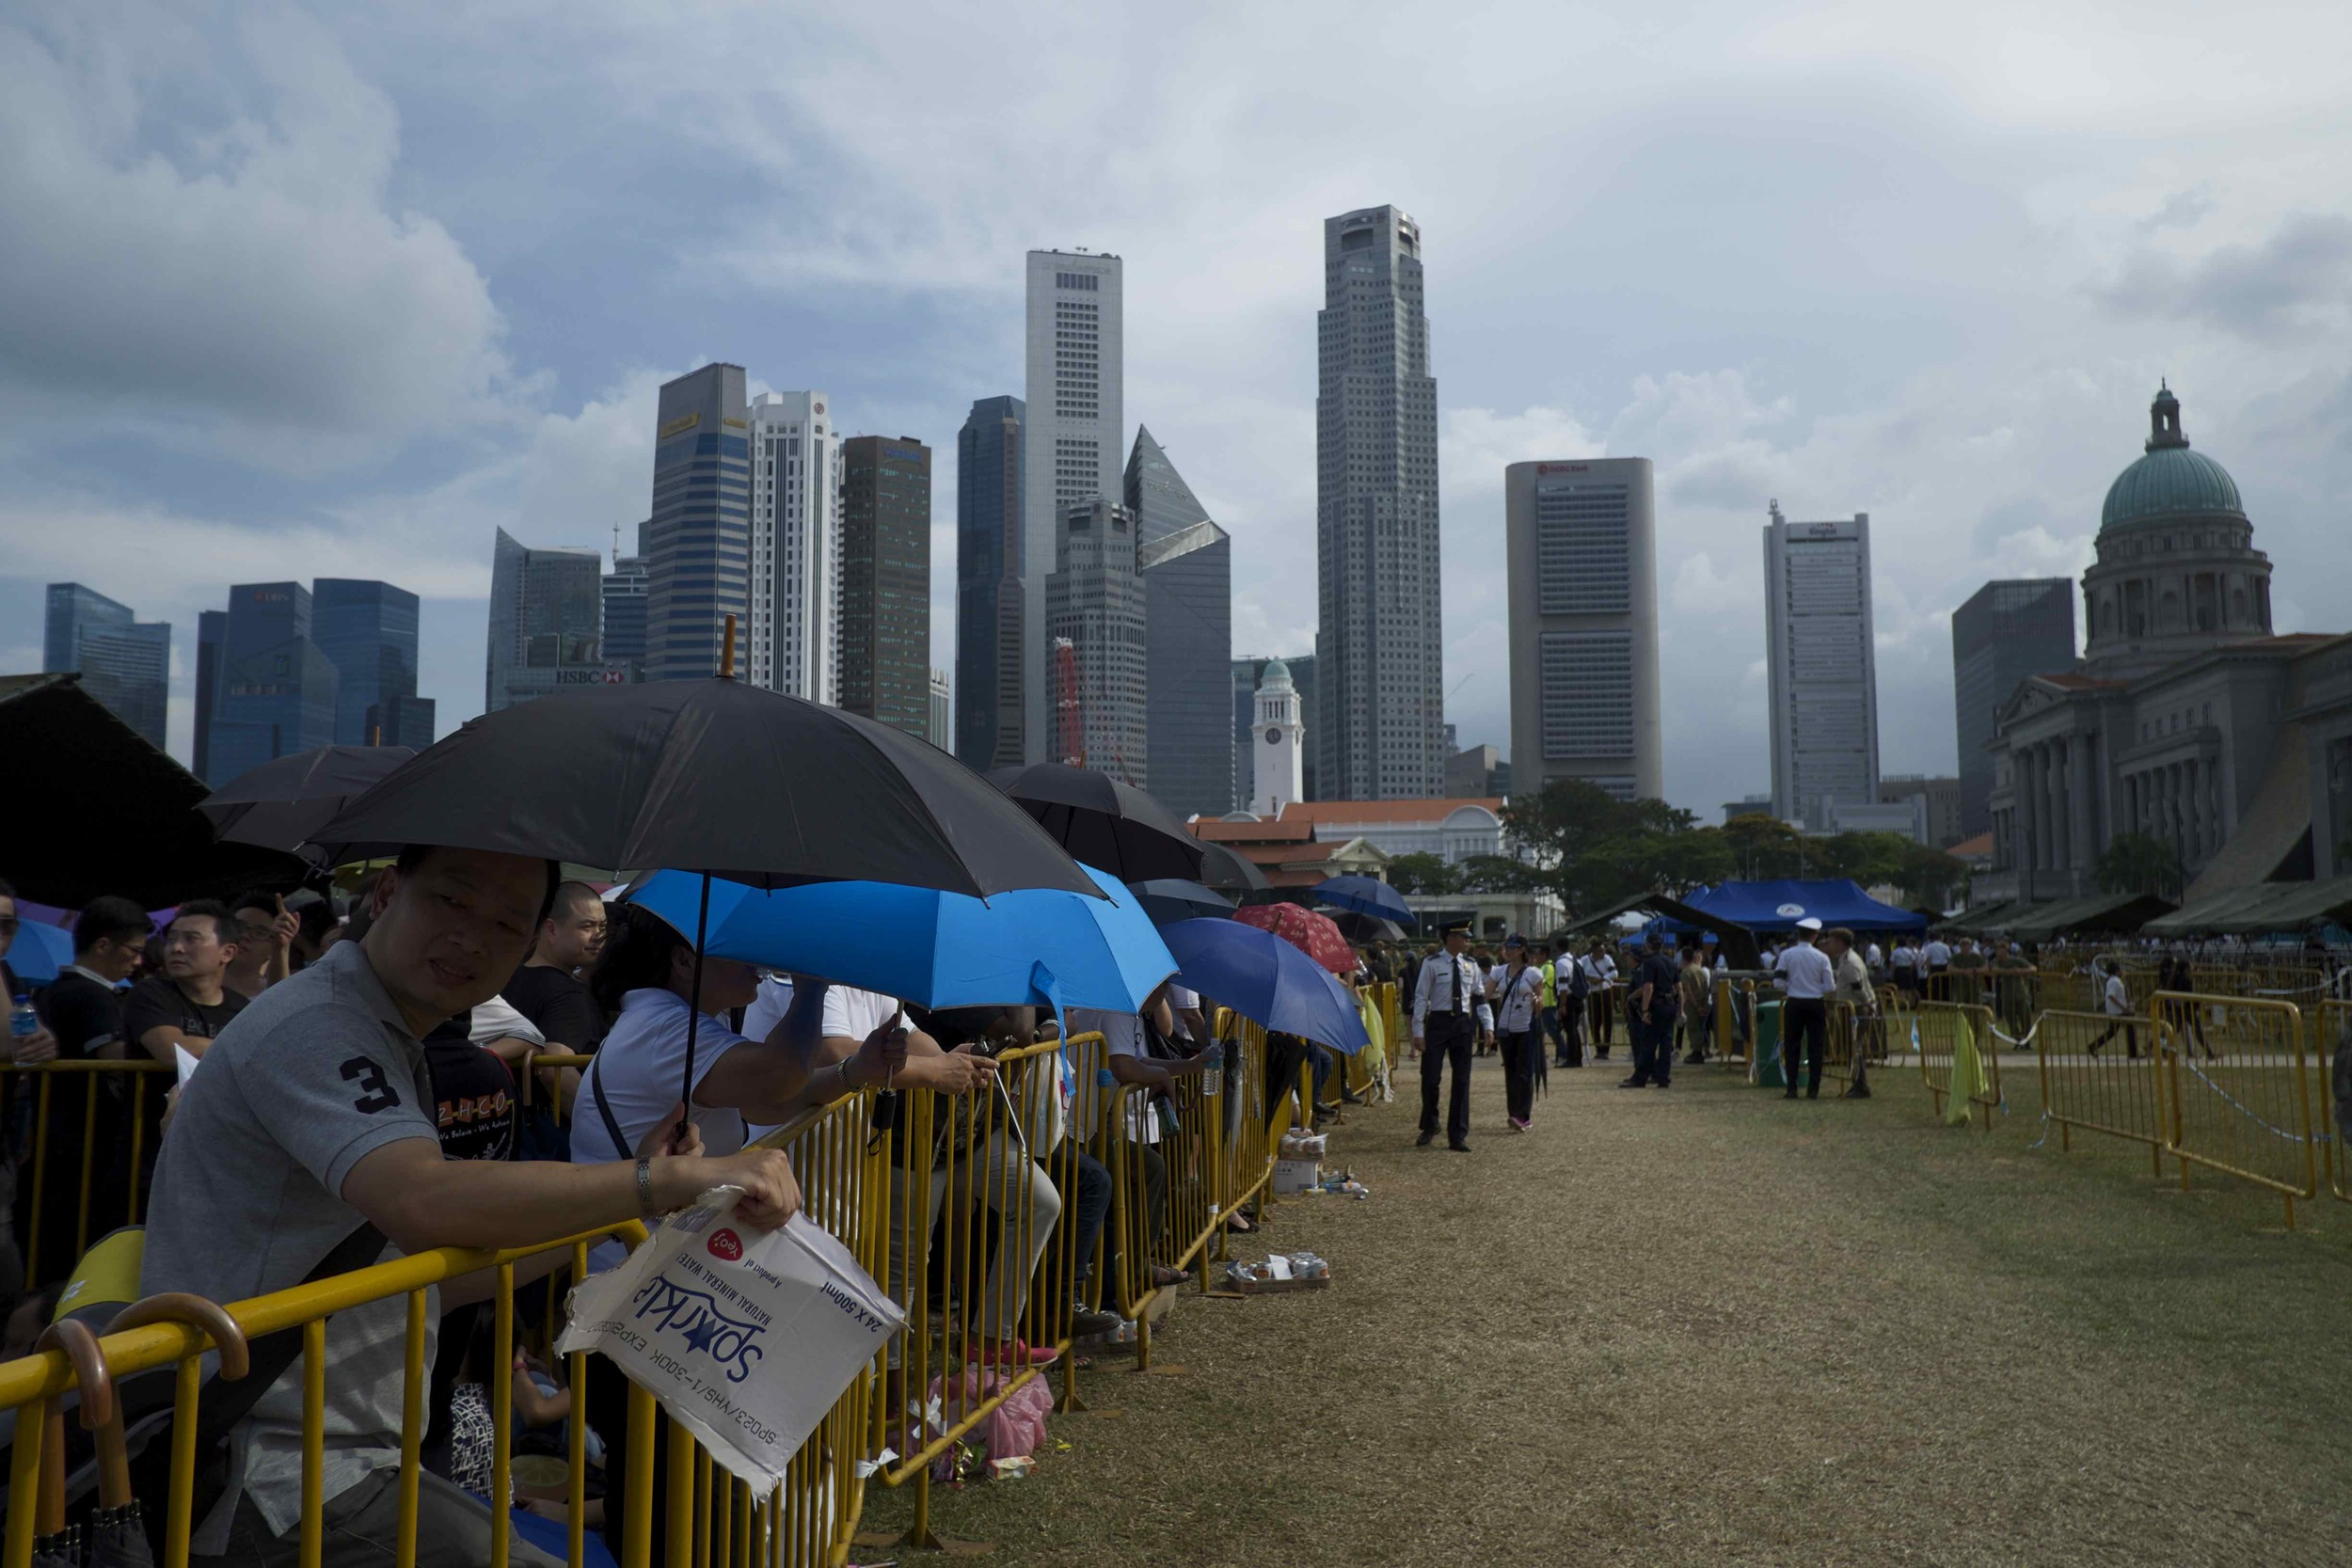 Thousands of Singaporeans wait in long lines to pay their last respects to the country's former Prime Minister Lee Kuan Yew, whose body was lying in state at the Parliament. (Credit: Dene-Hern Chen)